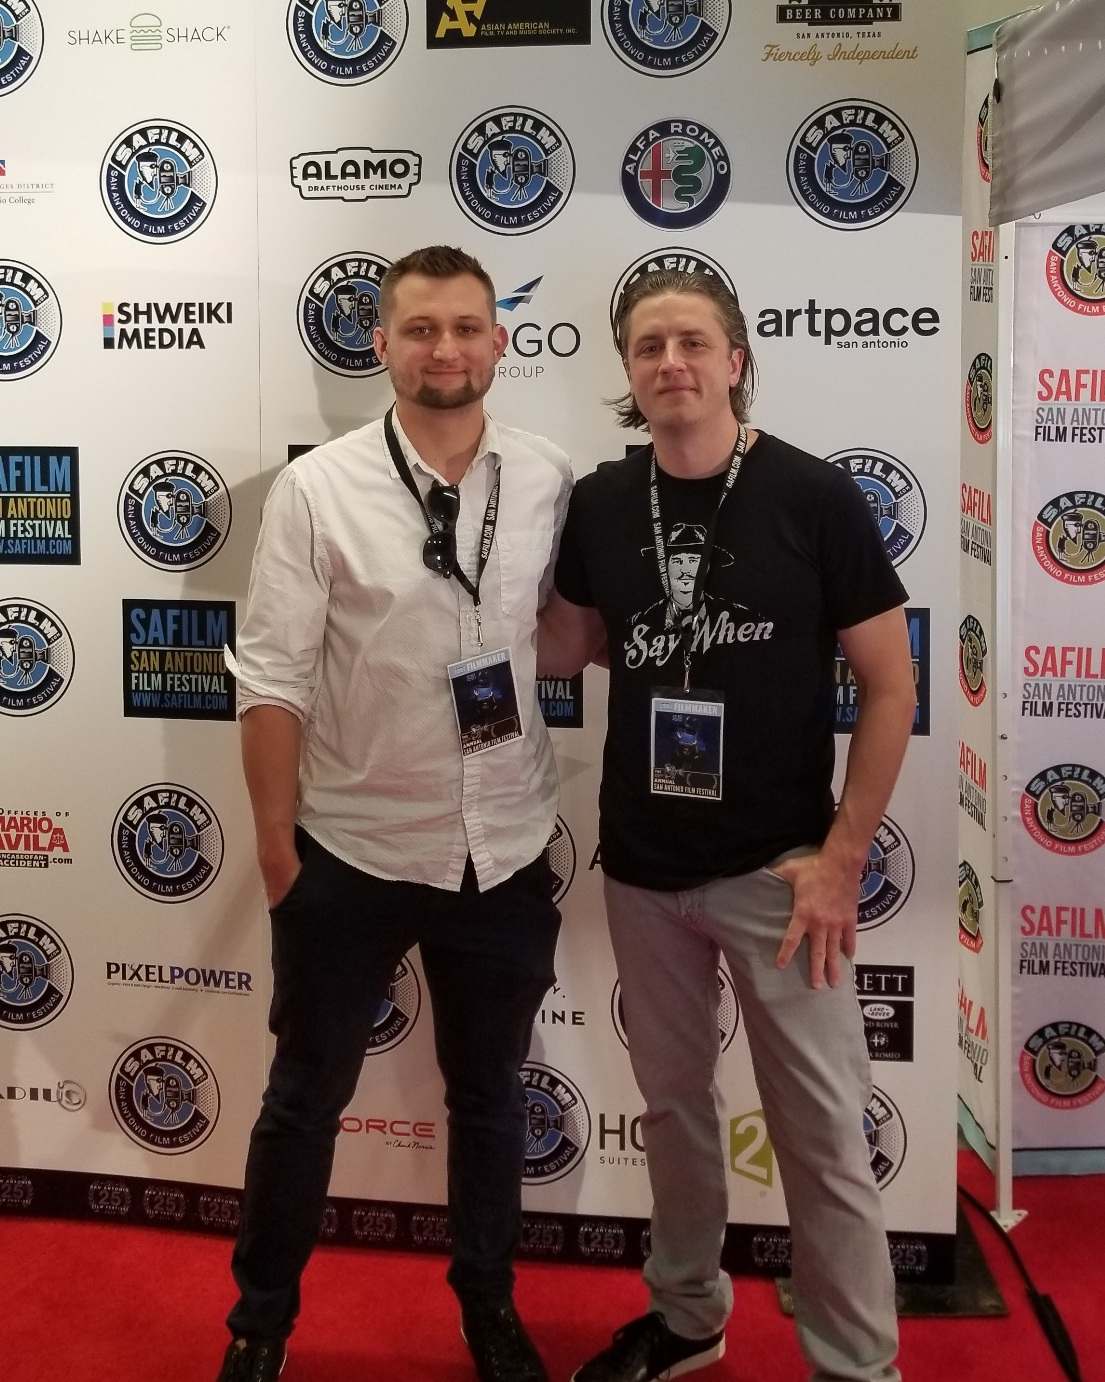 Christian Crocker (producer) & Philip S. Plowden (director) at the San Antonio Texas Premiere of  Range Runners.